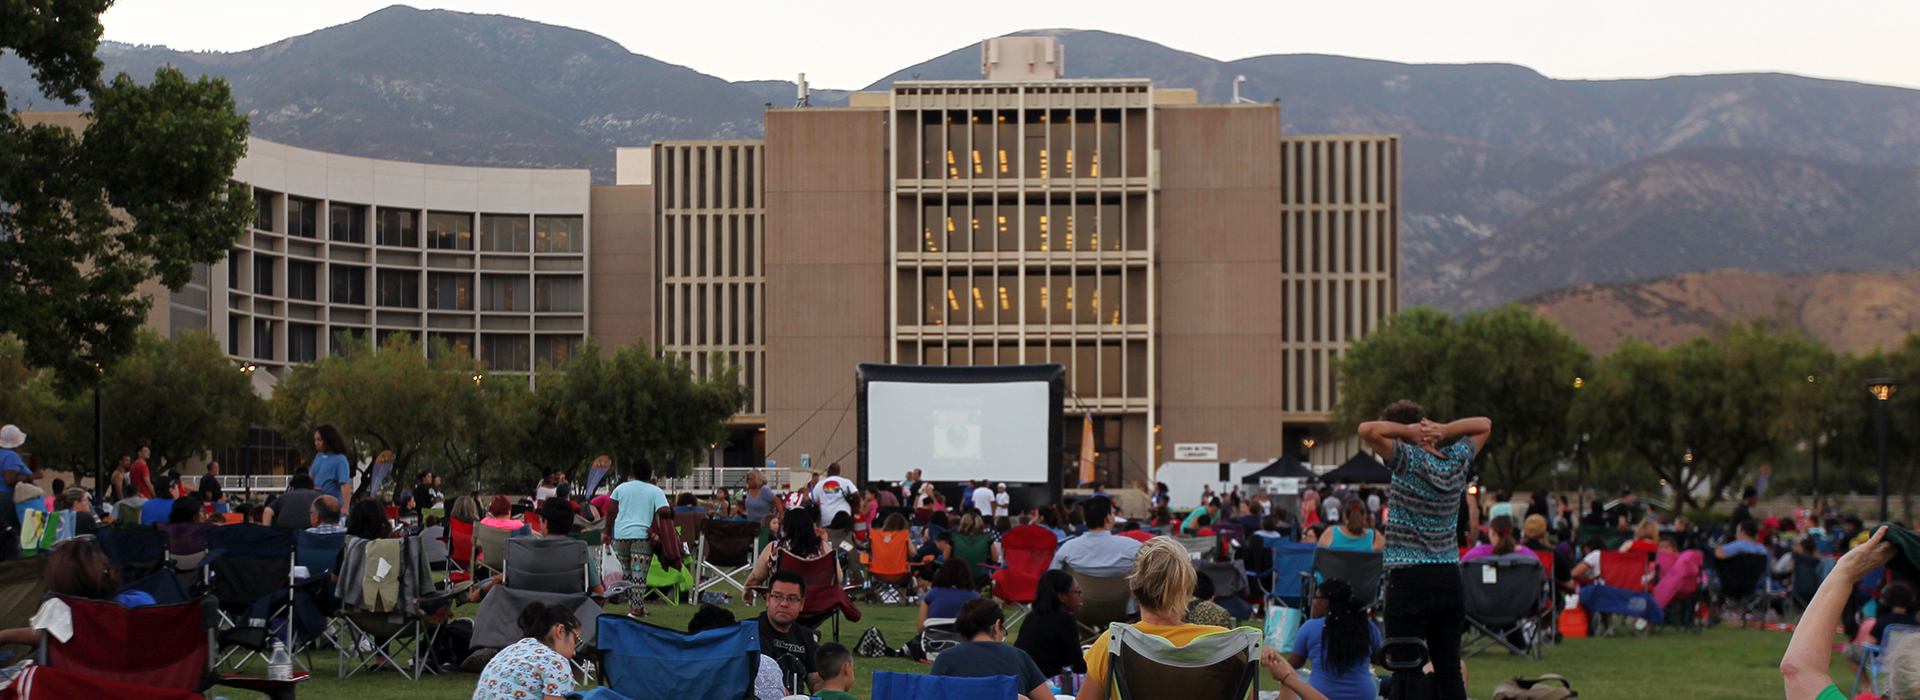 Free Summer Movie Series concludes Thursday with 'Beauty and the Beast'